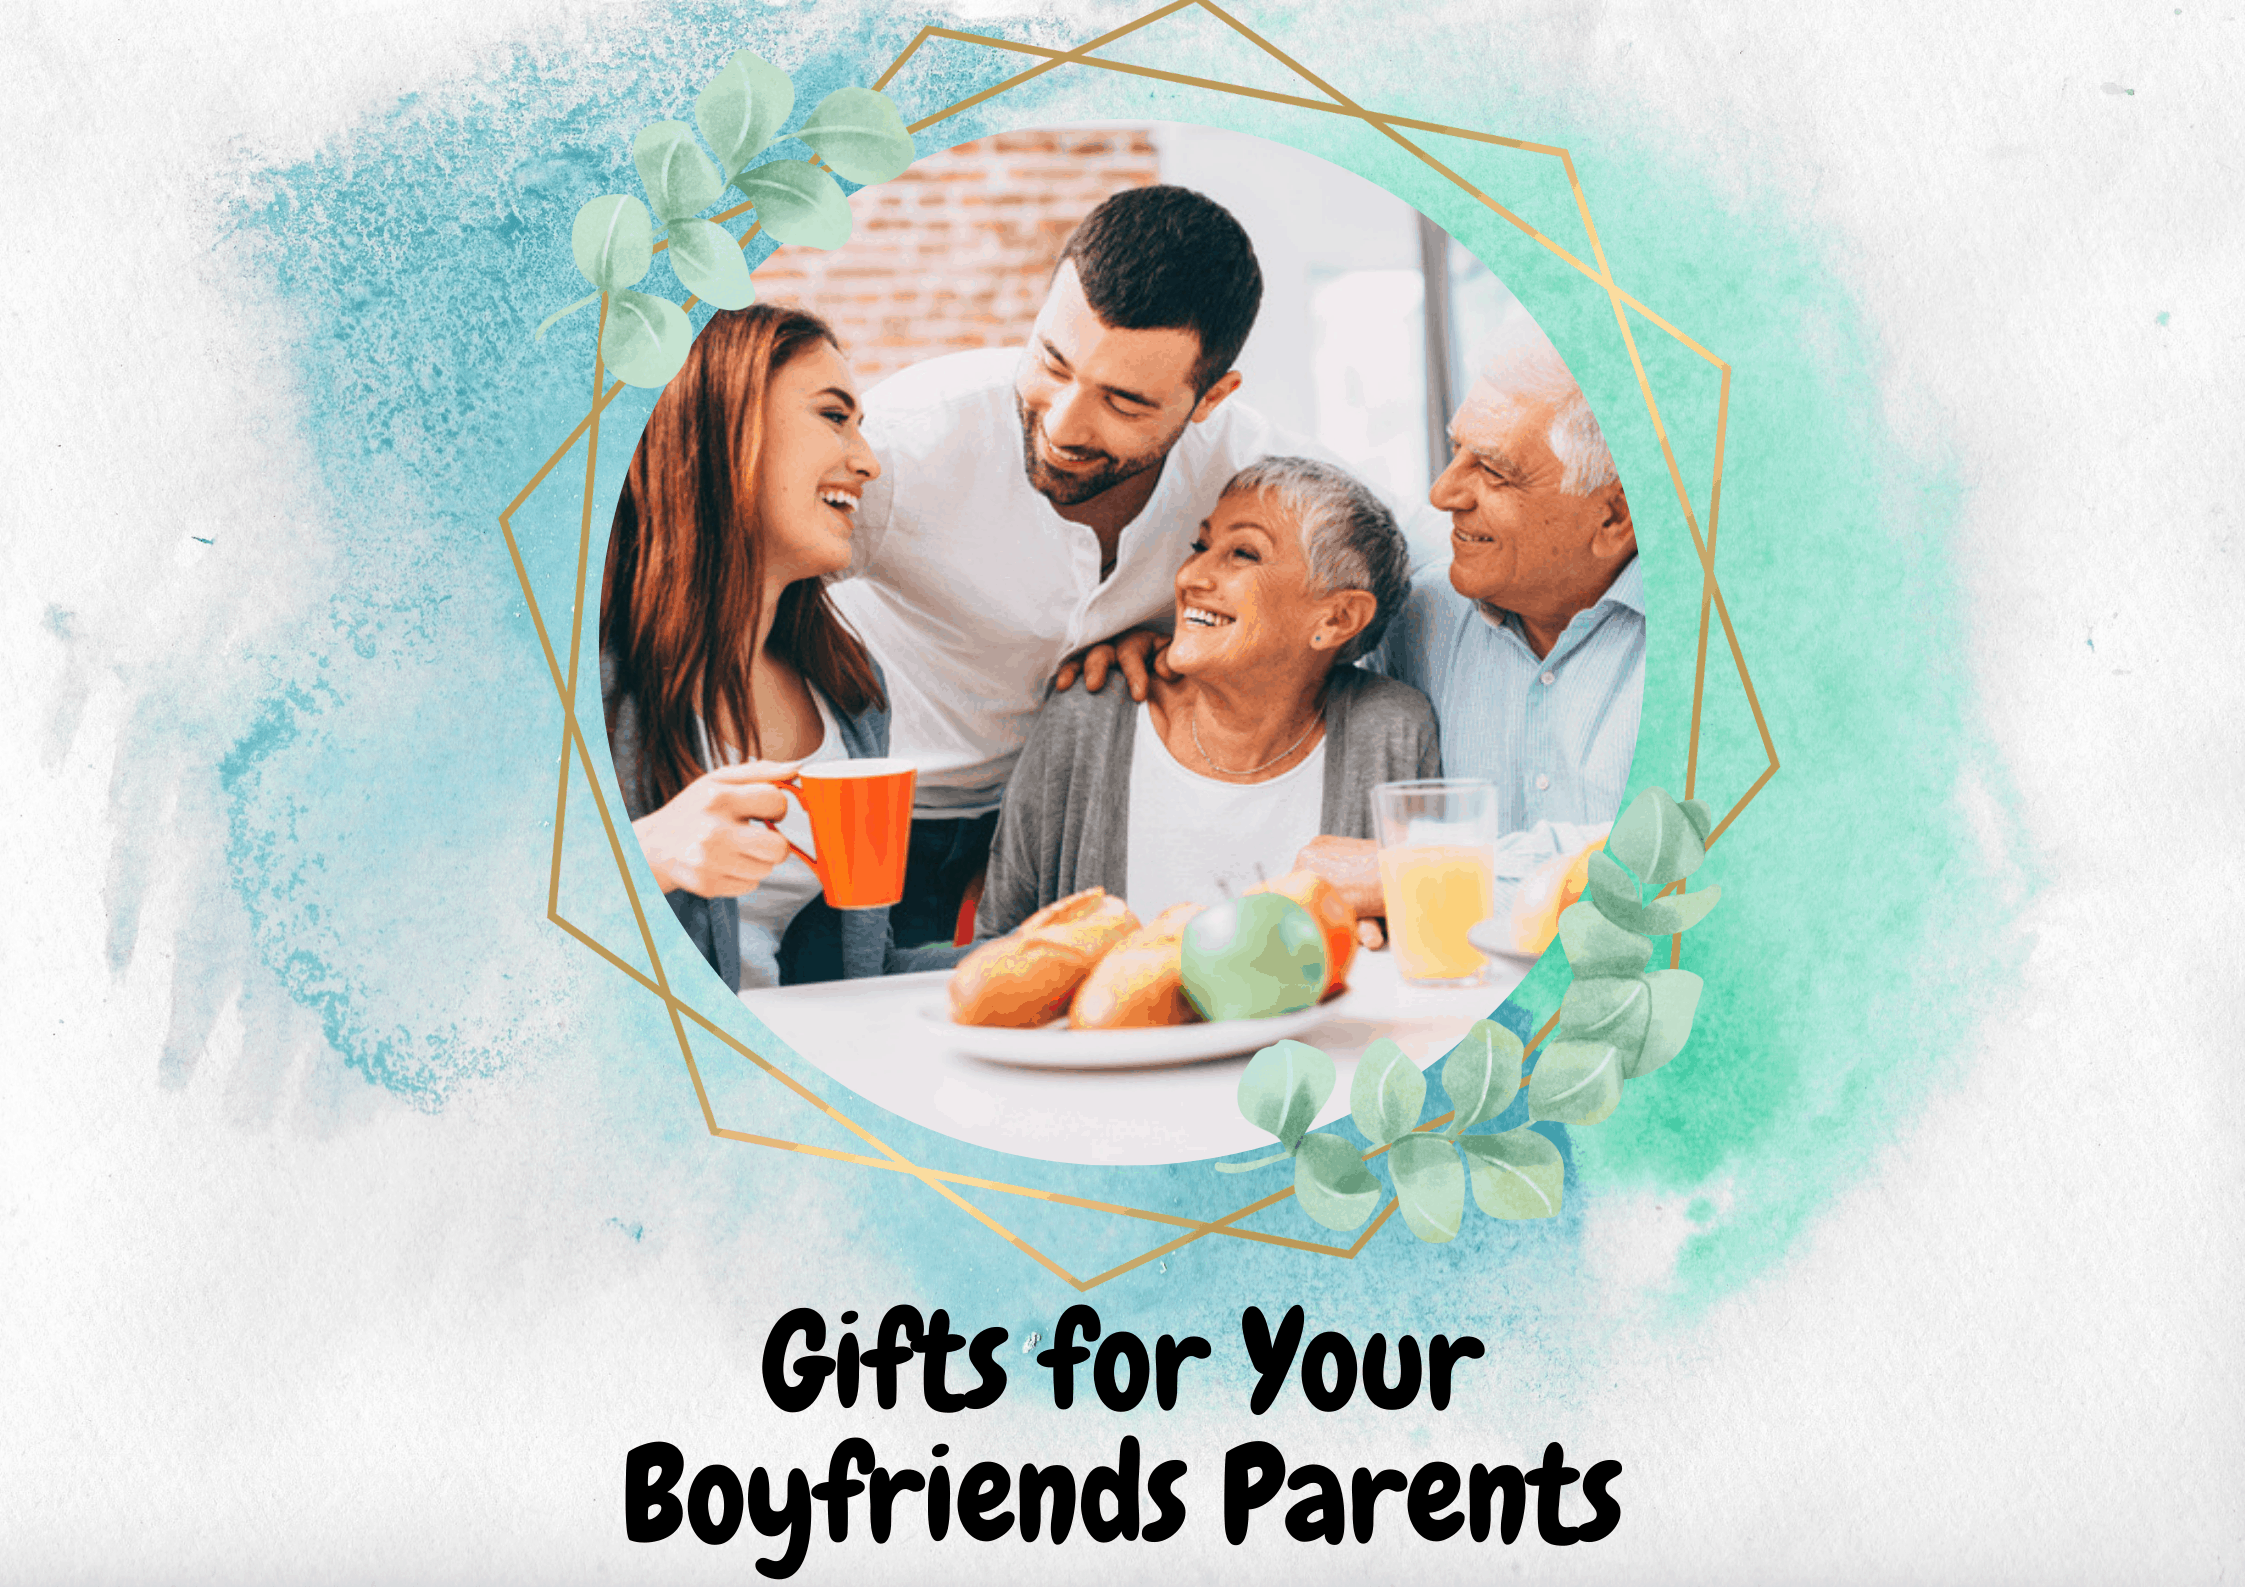 30 Exciting Gifts for Your Boyfriends Parents They'll Adore